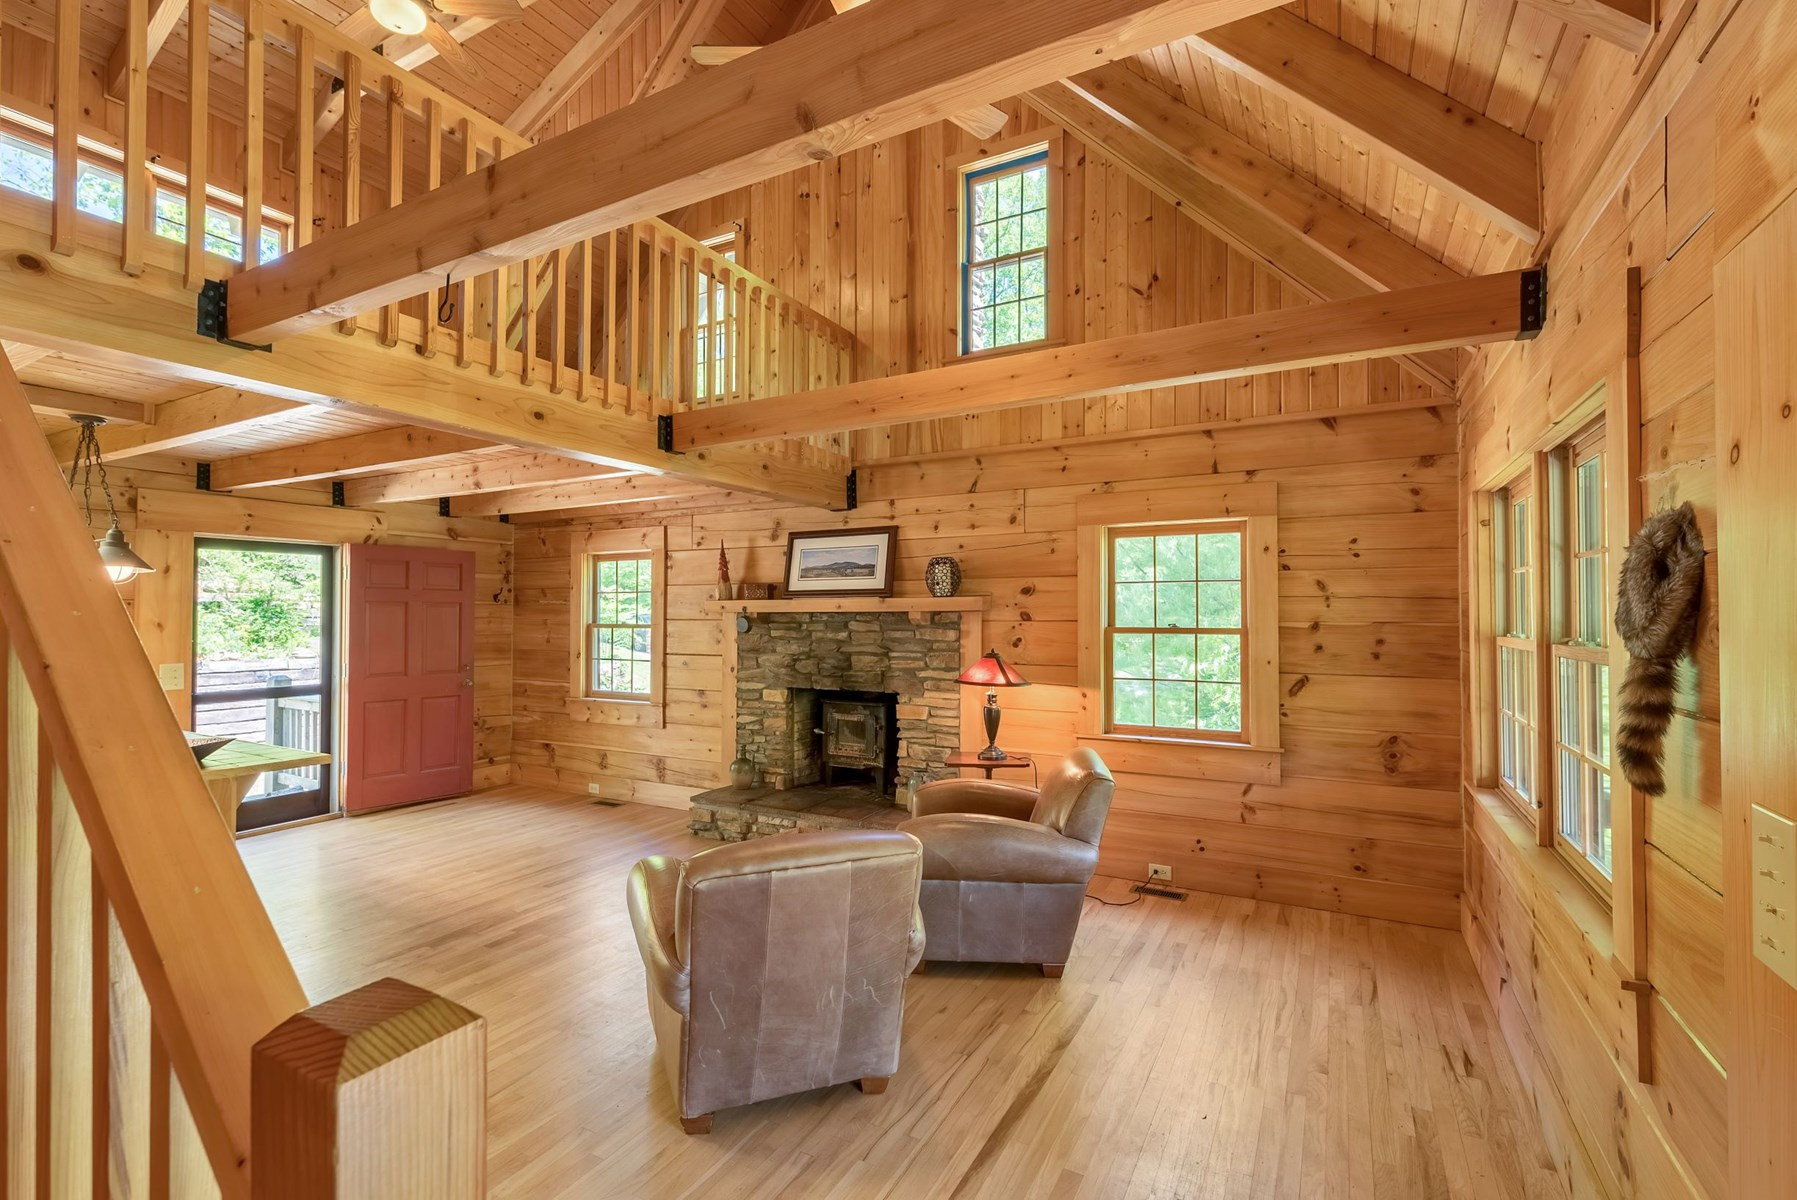 Cabin on Acreage for Sale - Private with Creek and Pond